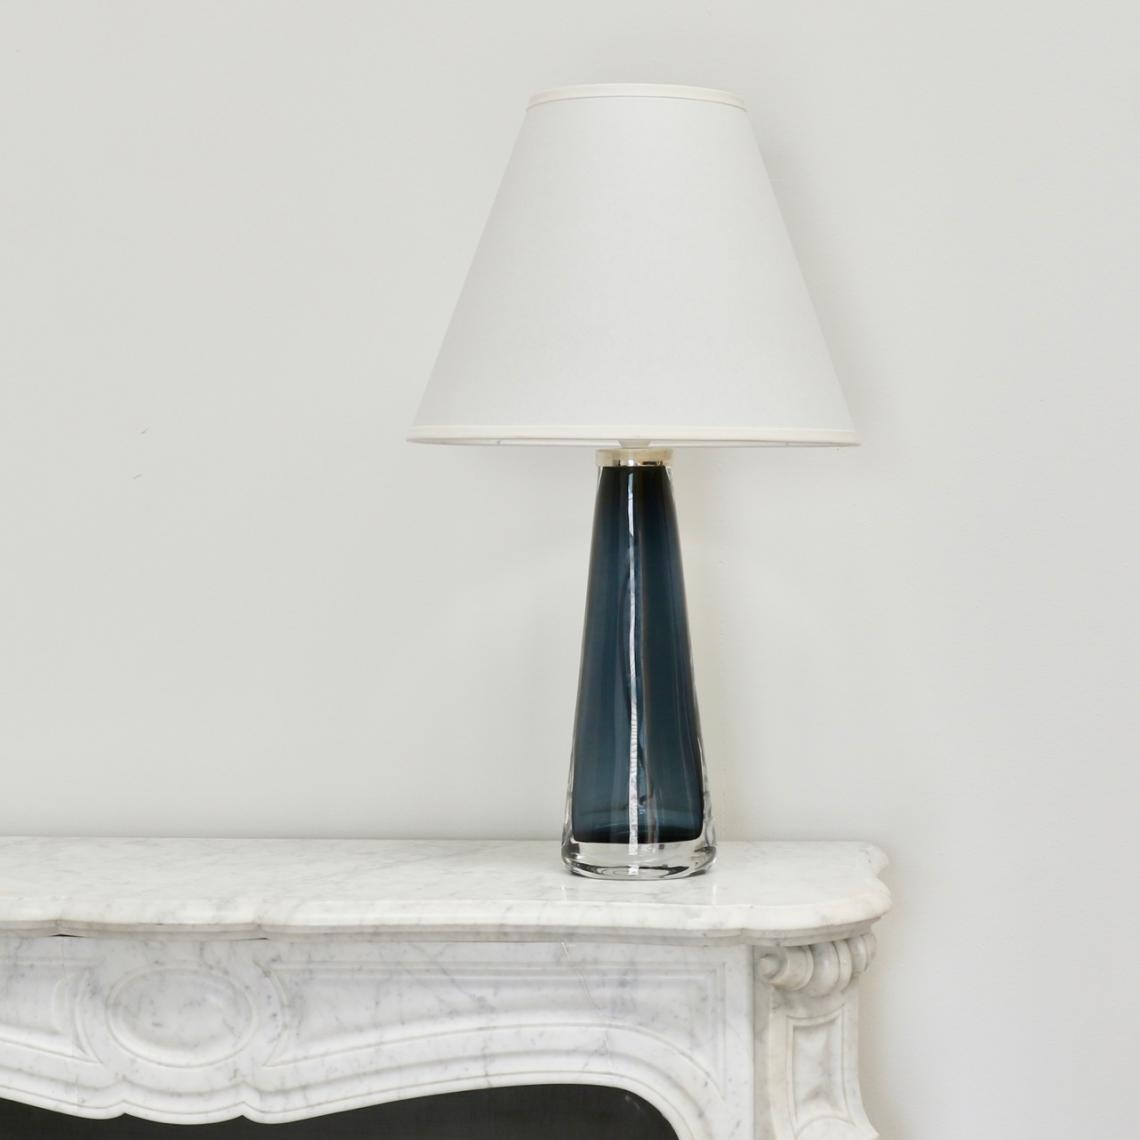 113-05 - Carl Fagerlund Lamp / Smoky Blue